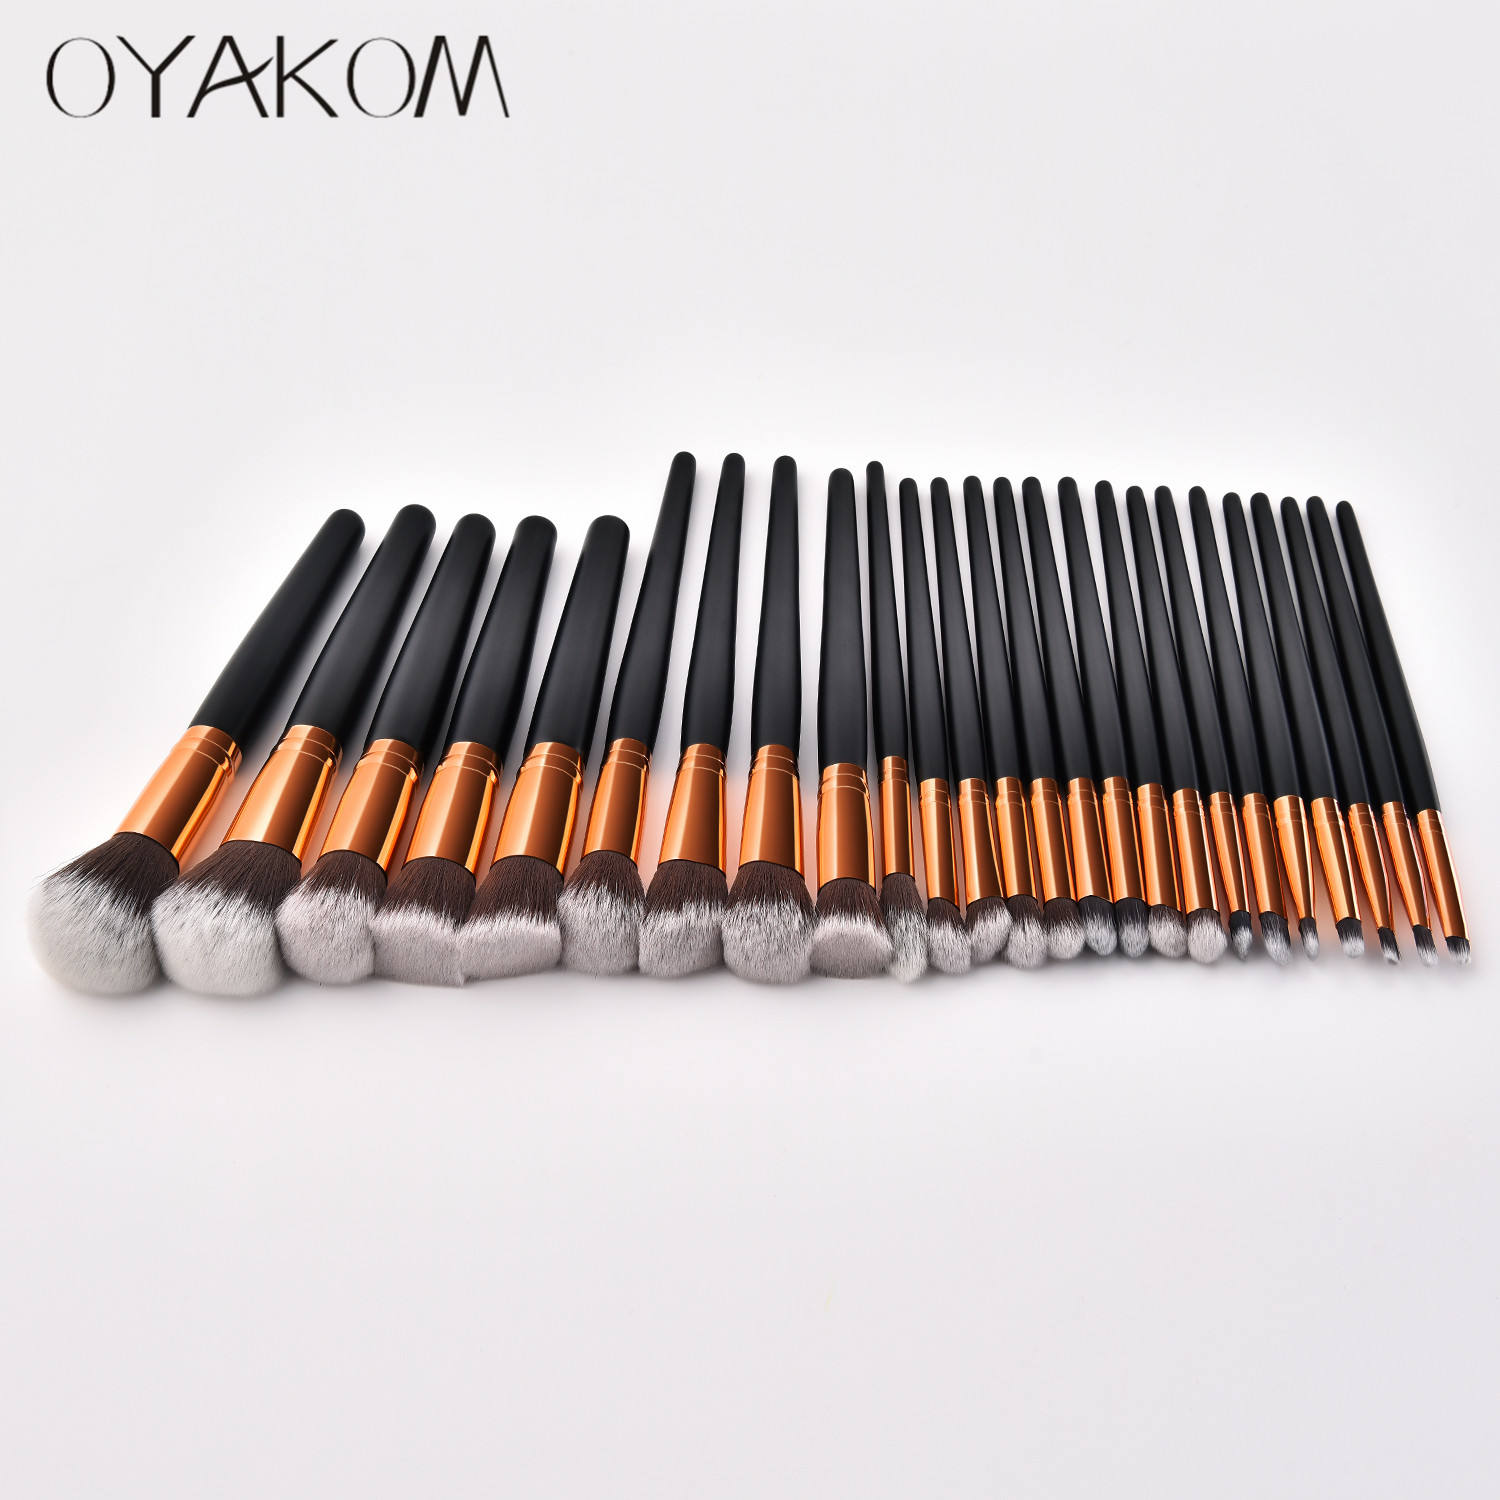 OYAKOM brushes makeup private label cosmetics beauty makeup factory price make up brushes professional pinceau maquillage